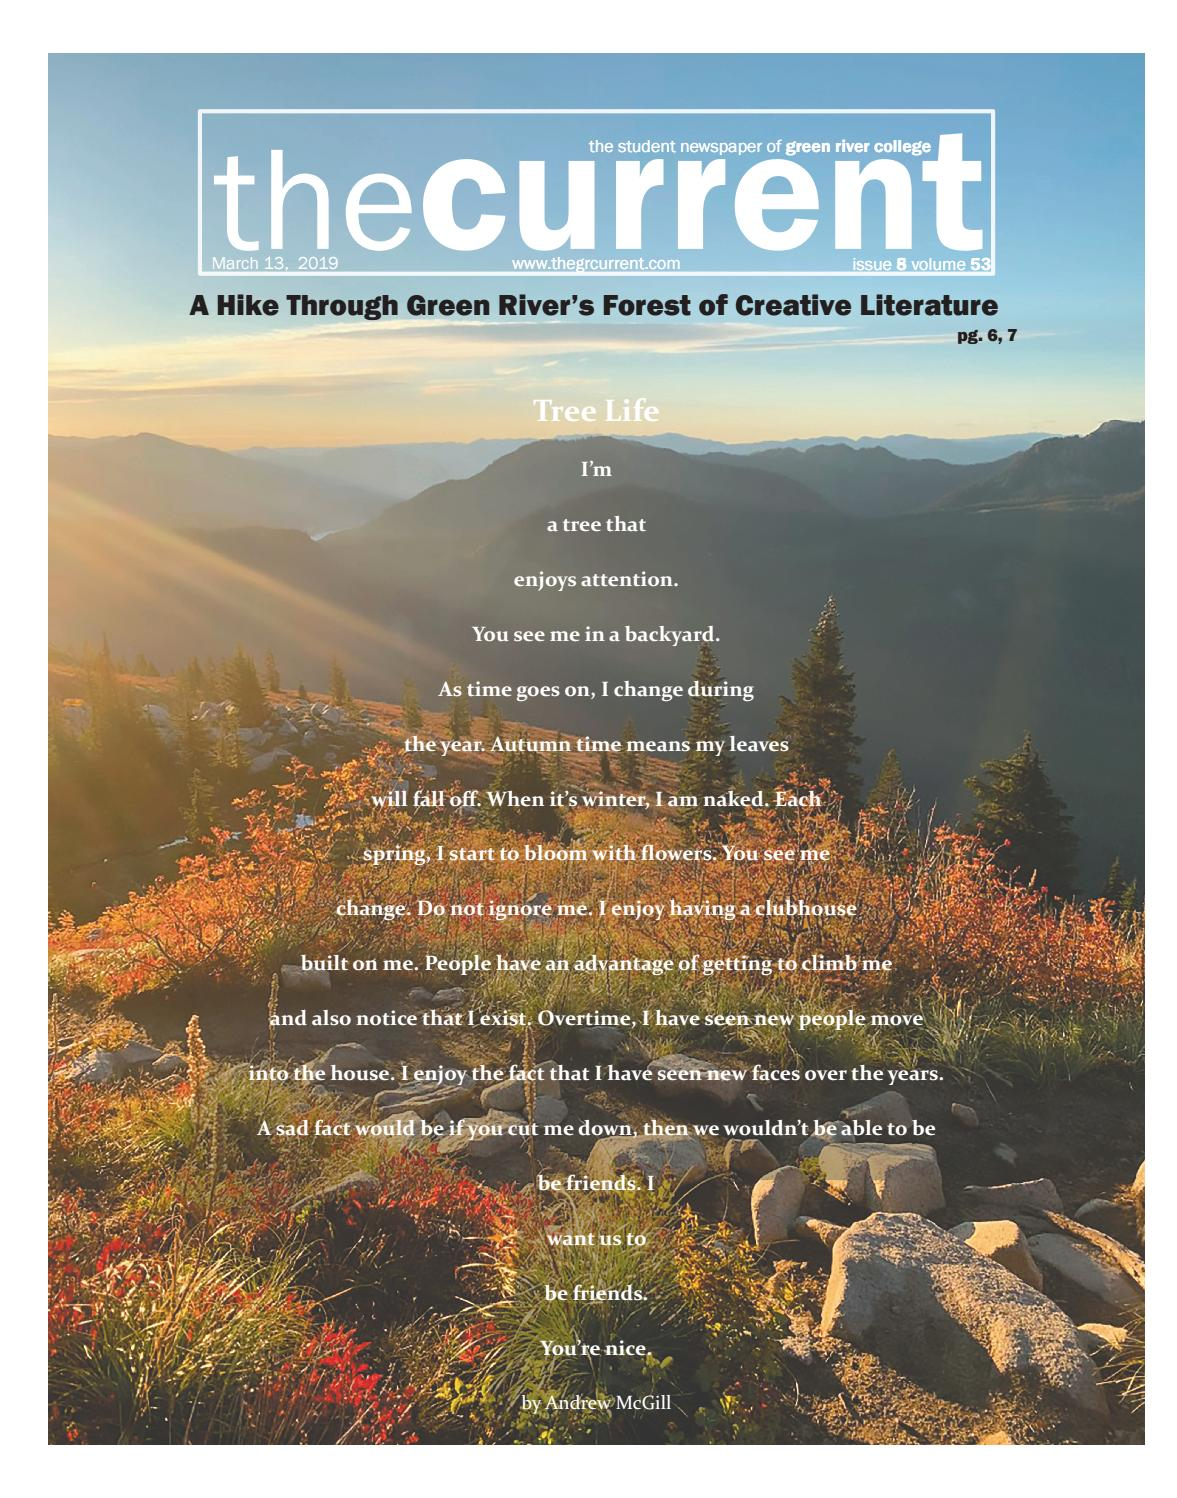 Issue 8 Volume 53 by The Current - issuu